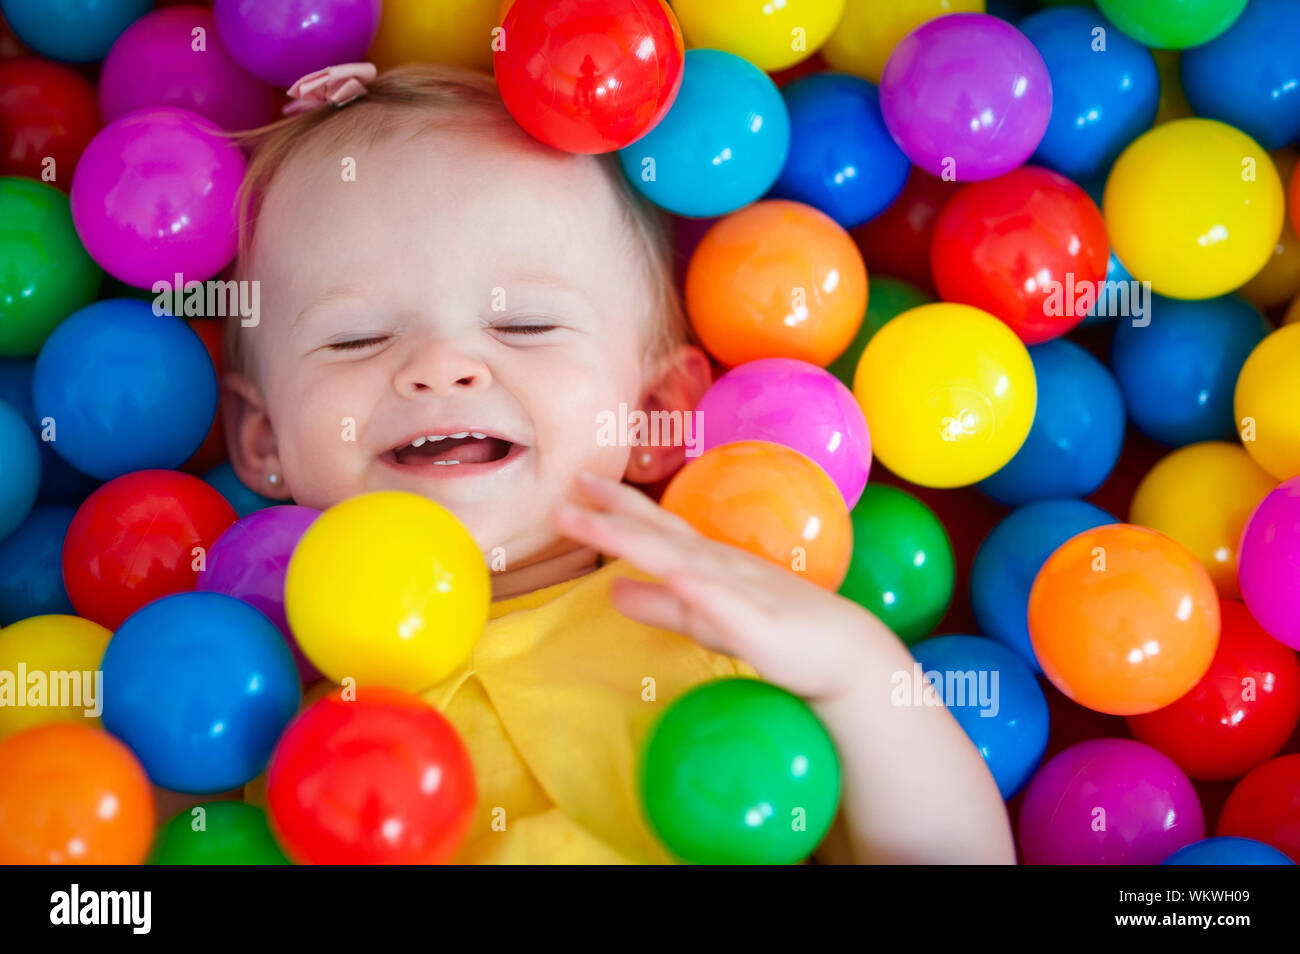 Horizontal close-up portrait of a 13 months old baby girl playing and laughing with eyes closed inside a ball pit tent at home. Stock Photo